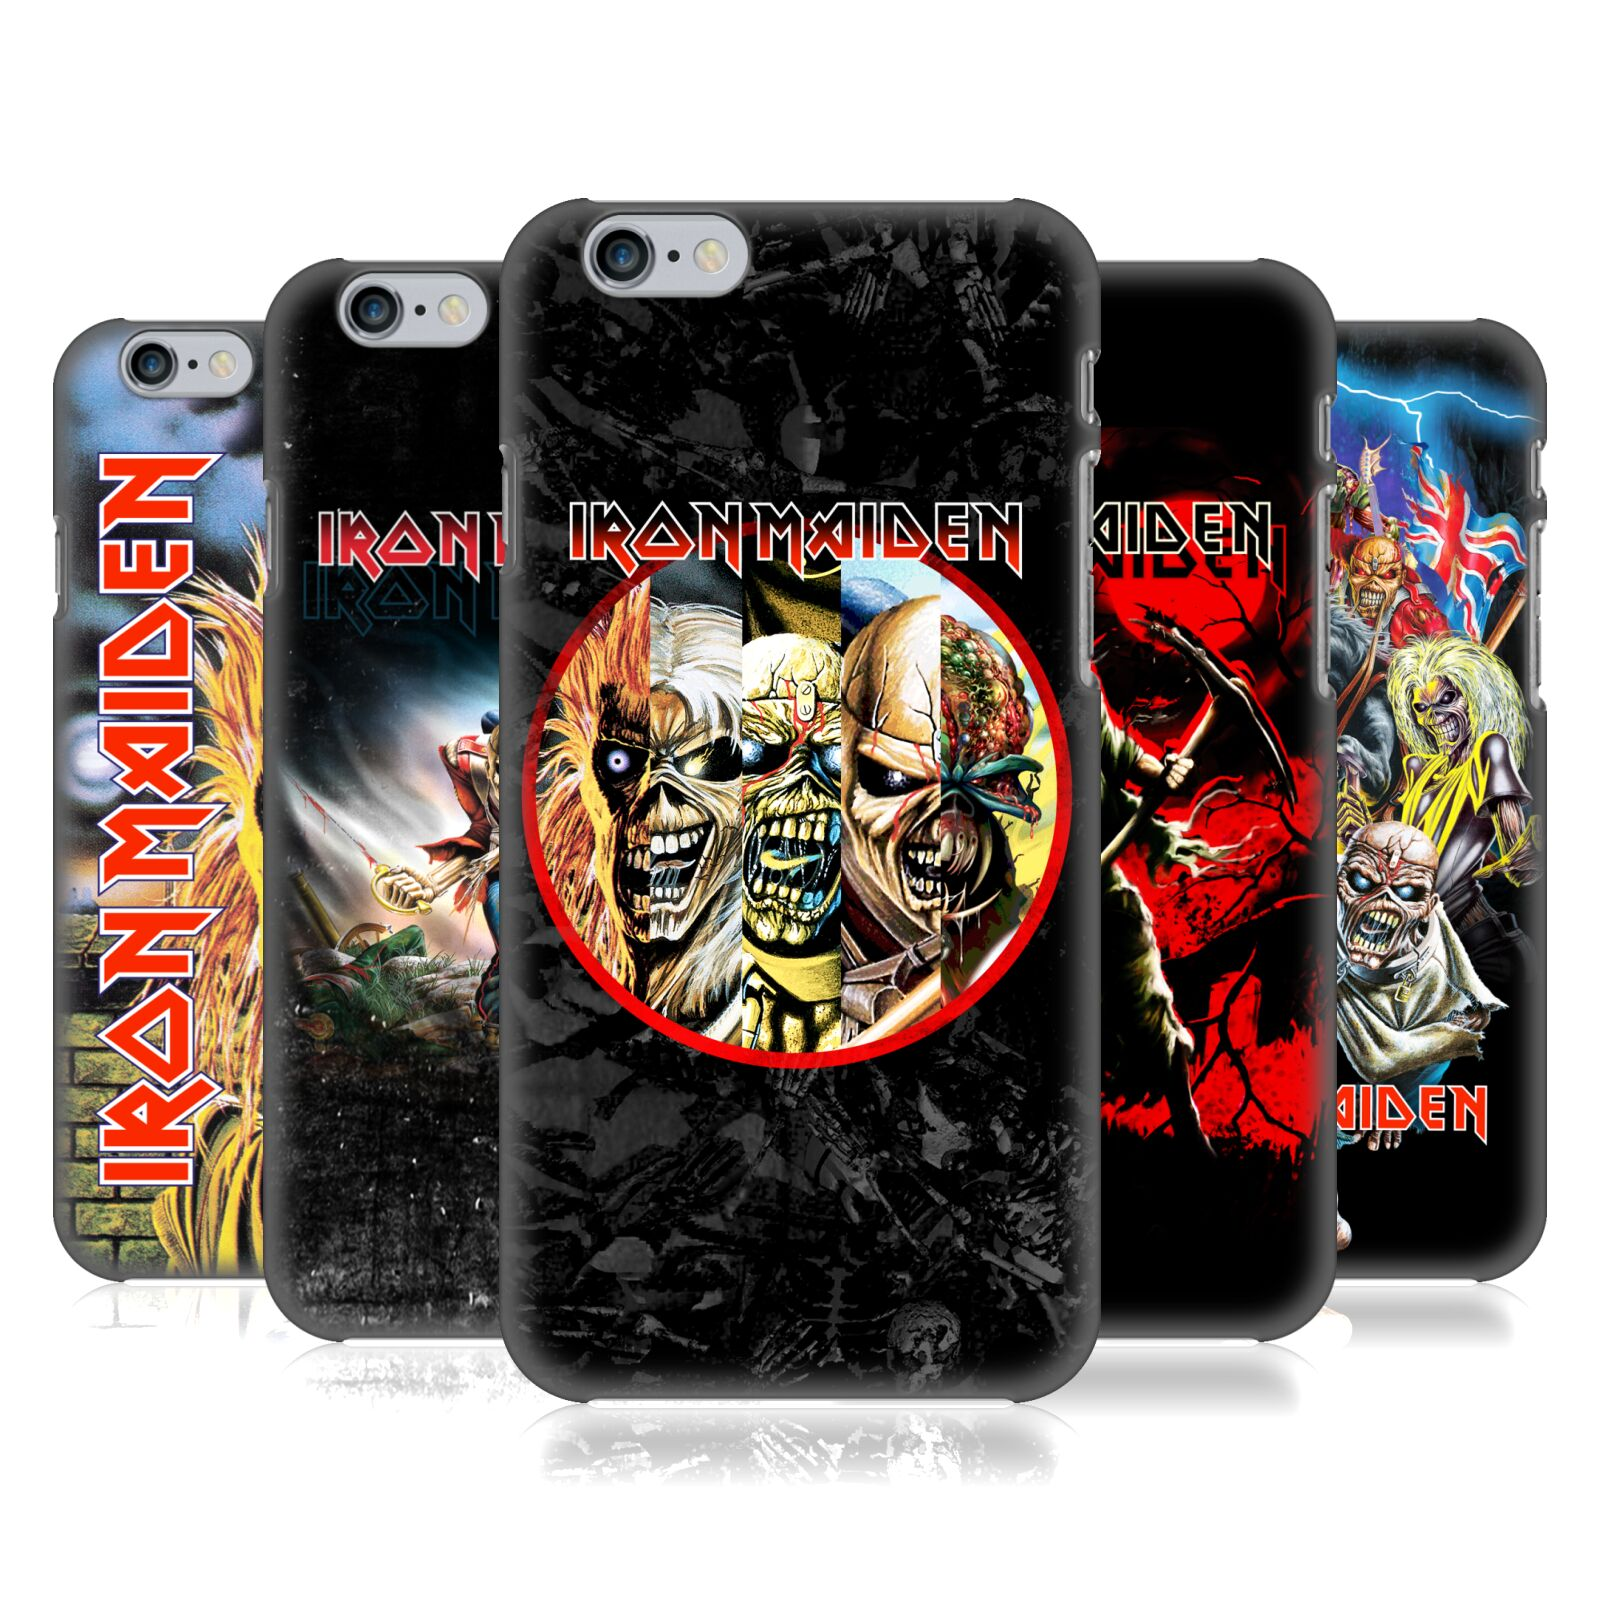 Iron Maiden Phone and Tablet cases